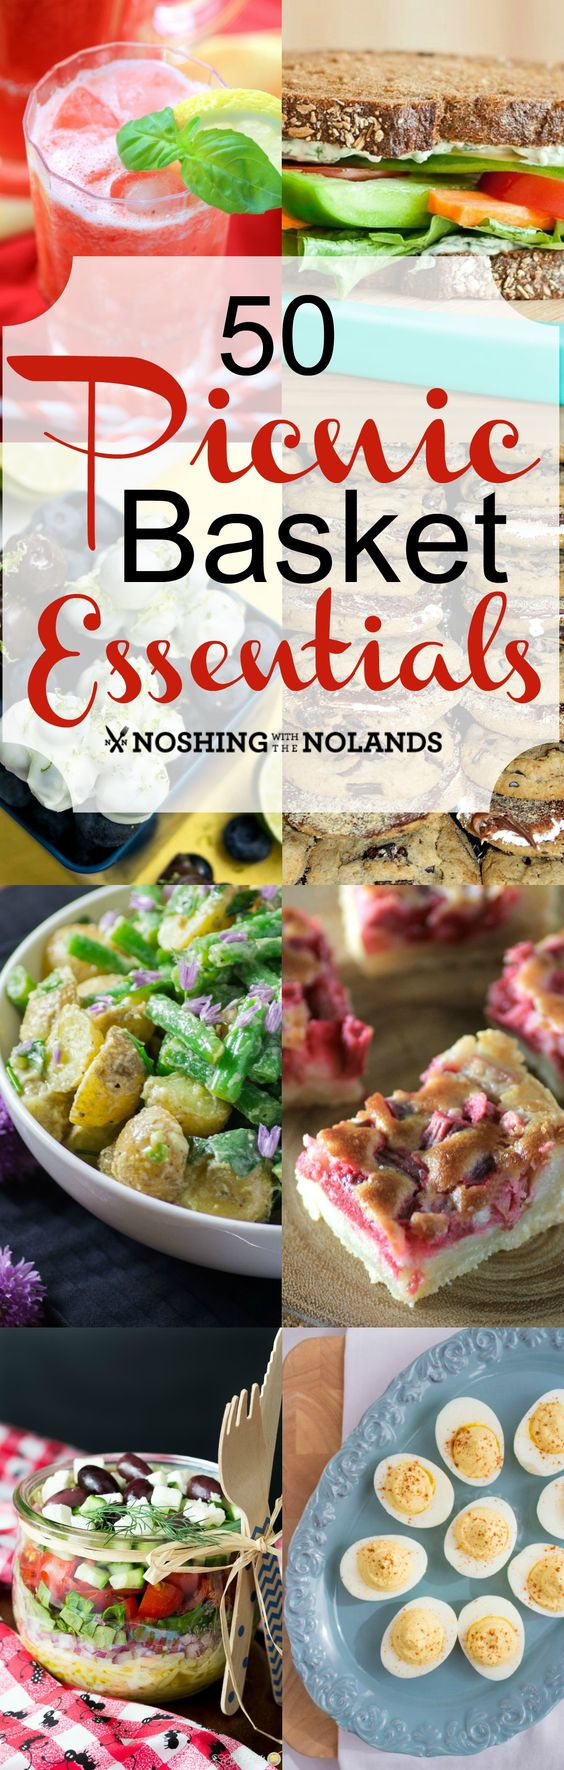 50 Picnic Basket Essentials from Noshing With the Nolands -  You'll find everything you need for your next picnic this summer including drinks, salads, sandwiches and much more!